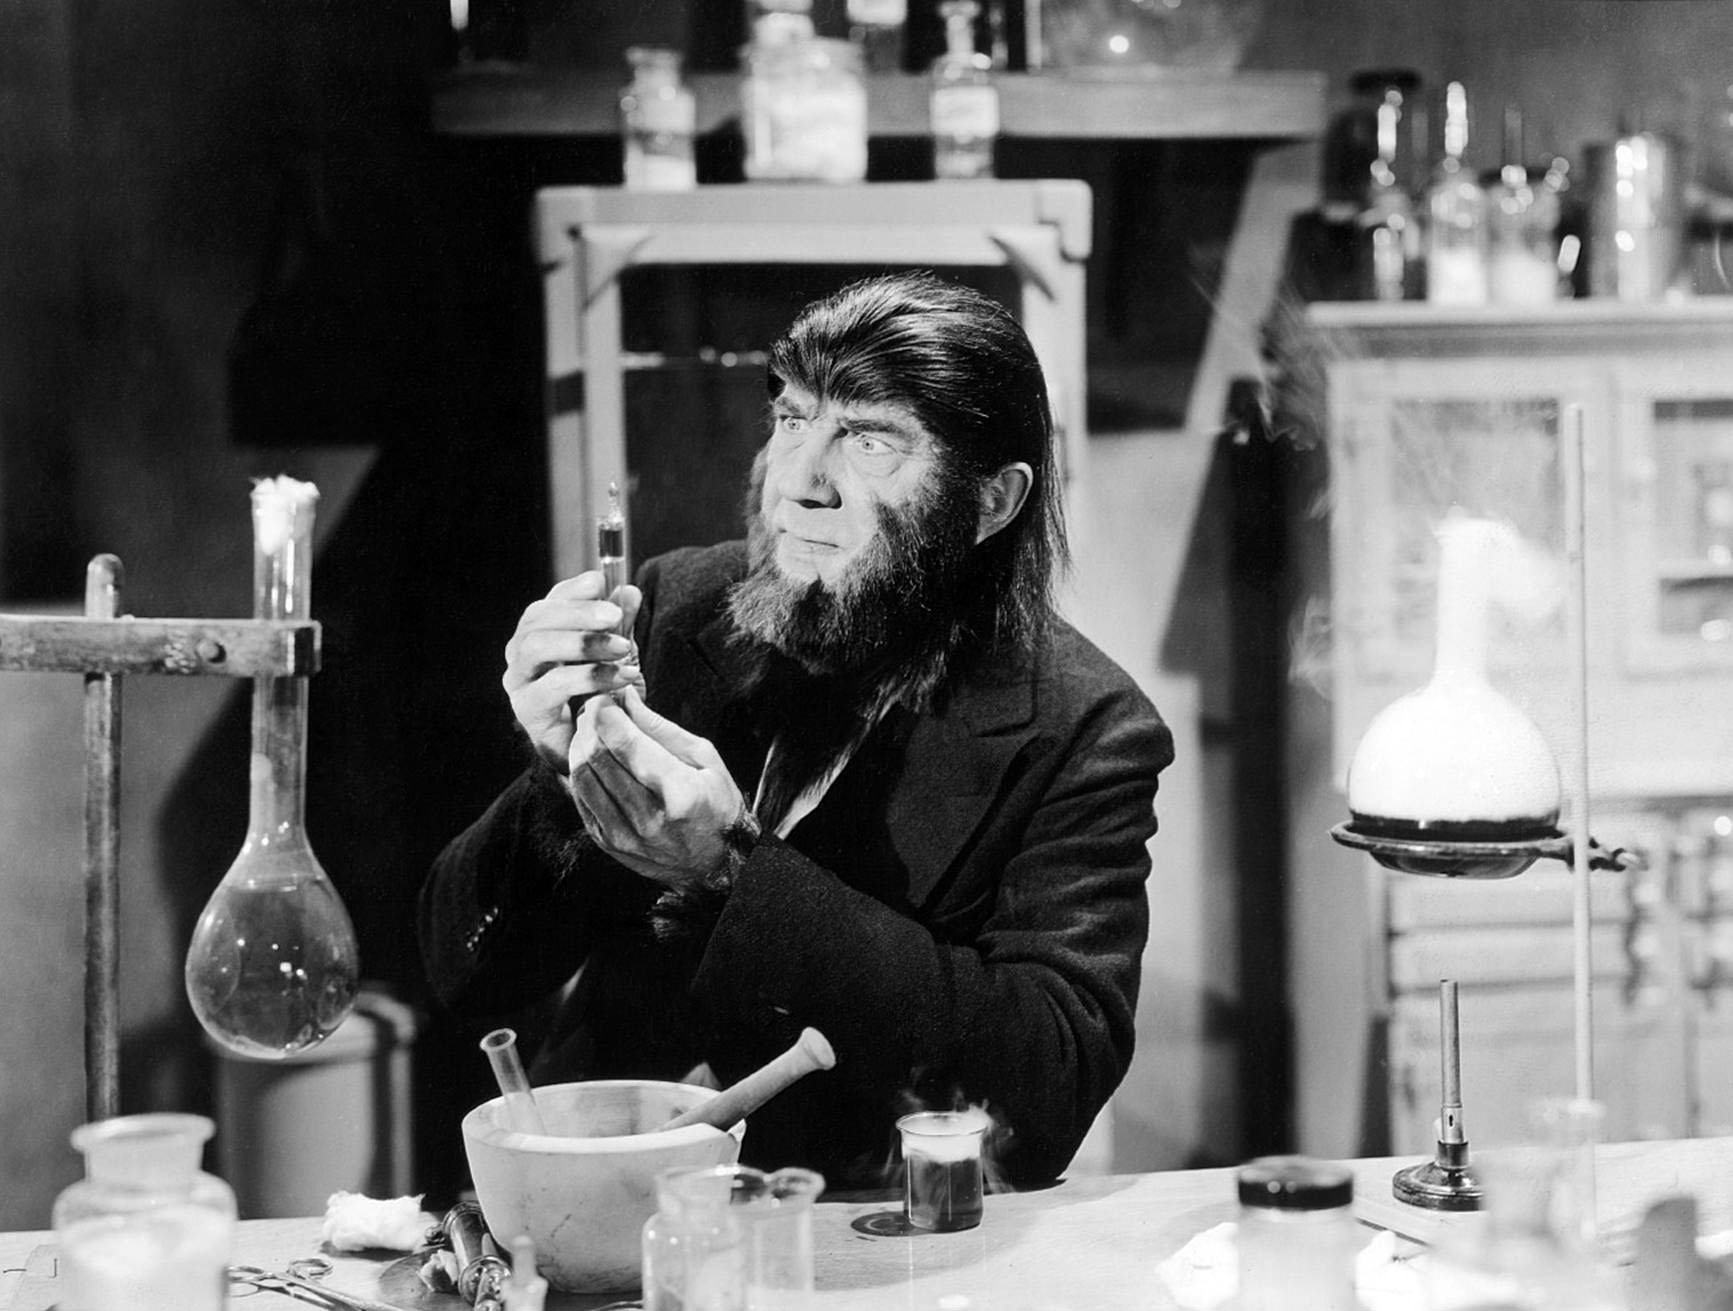 Bela Lugosi as mad scientist James Brewster in The Ape Man (1943)